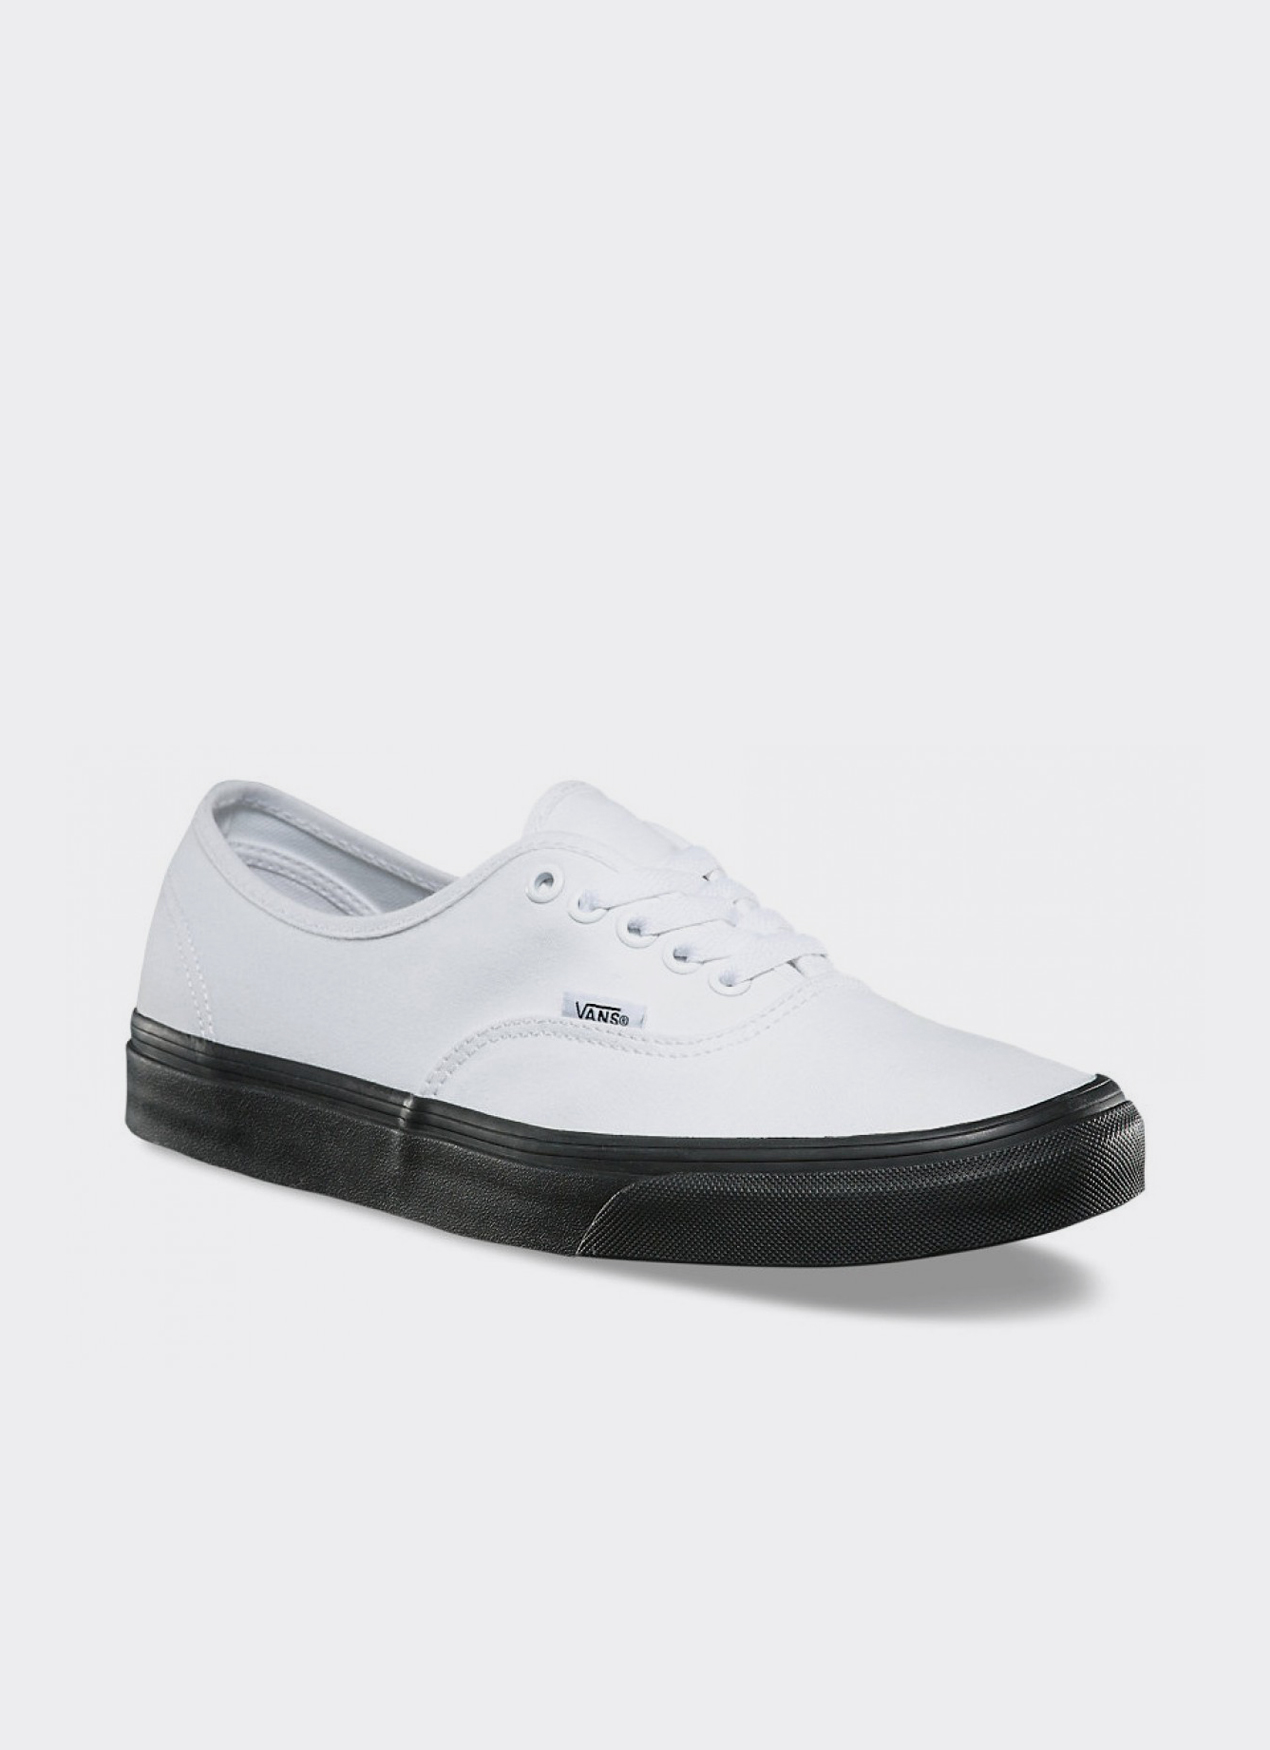 VANS Black & White UA Authentic Low Top Sneakers